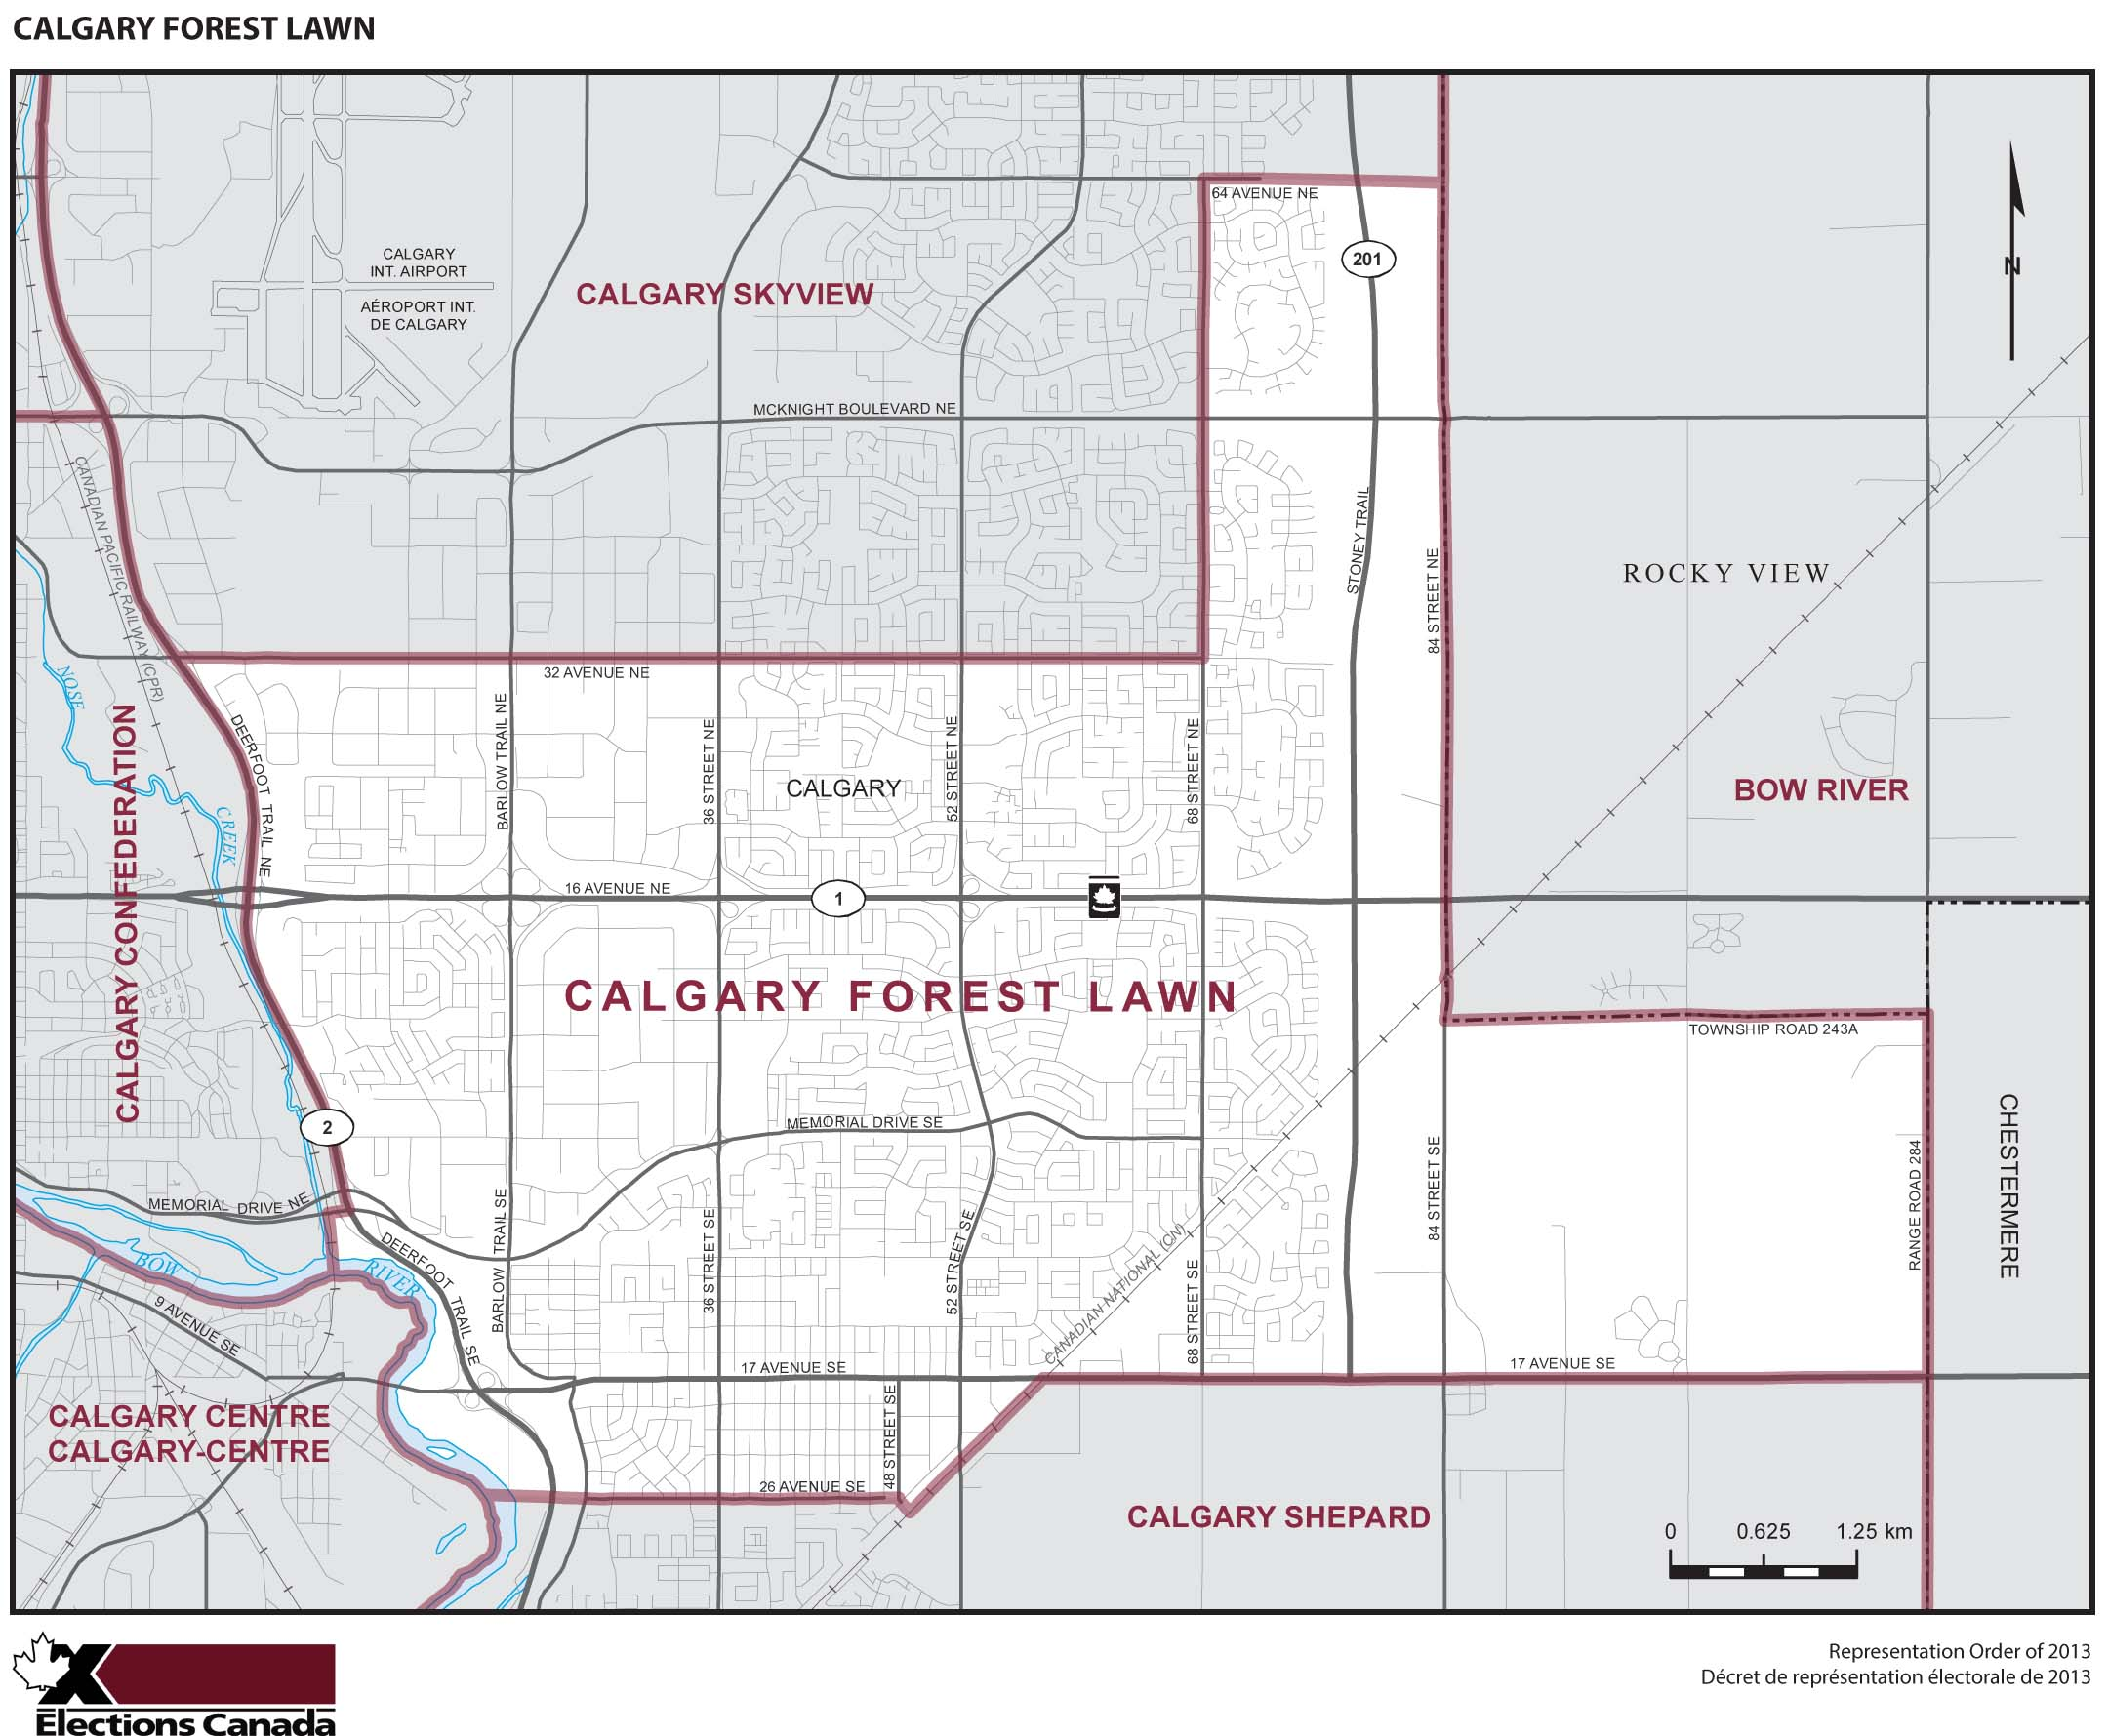 Map: Calgary Forest Lawn, Federal electoral district, 2013 Representation Order (in white), Alberta